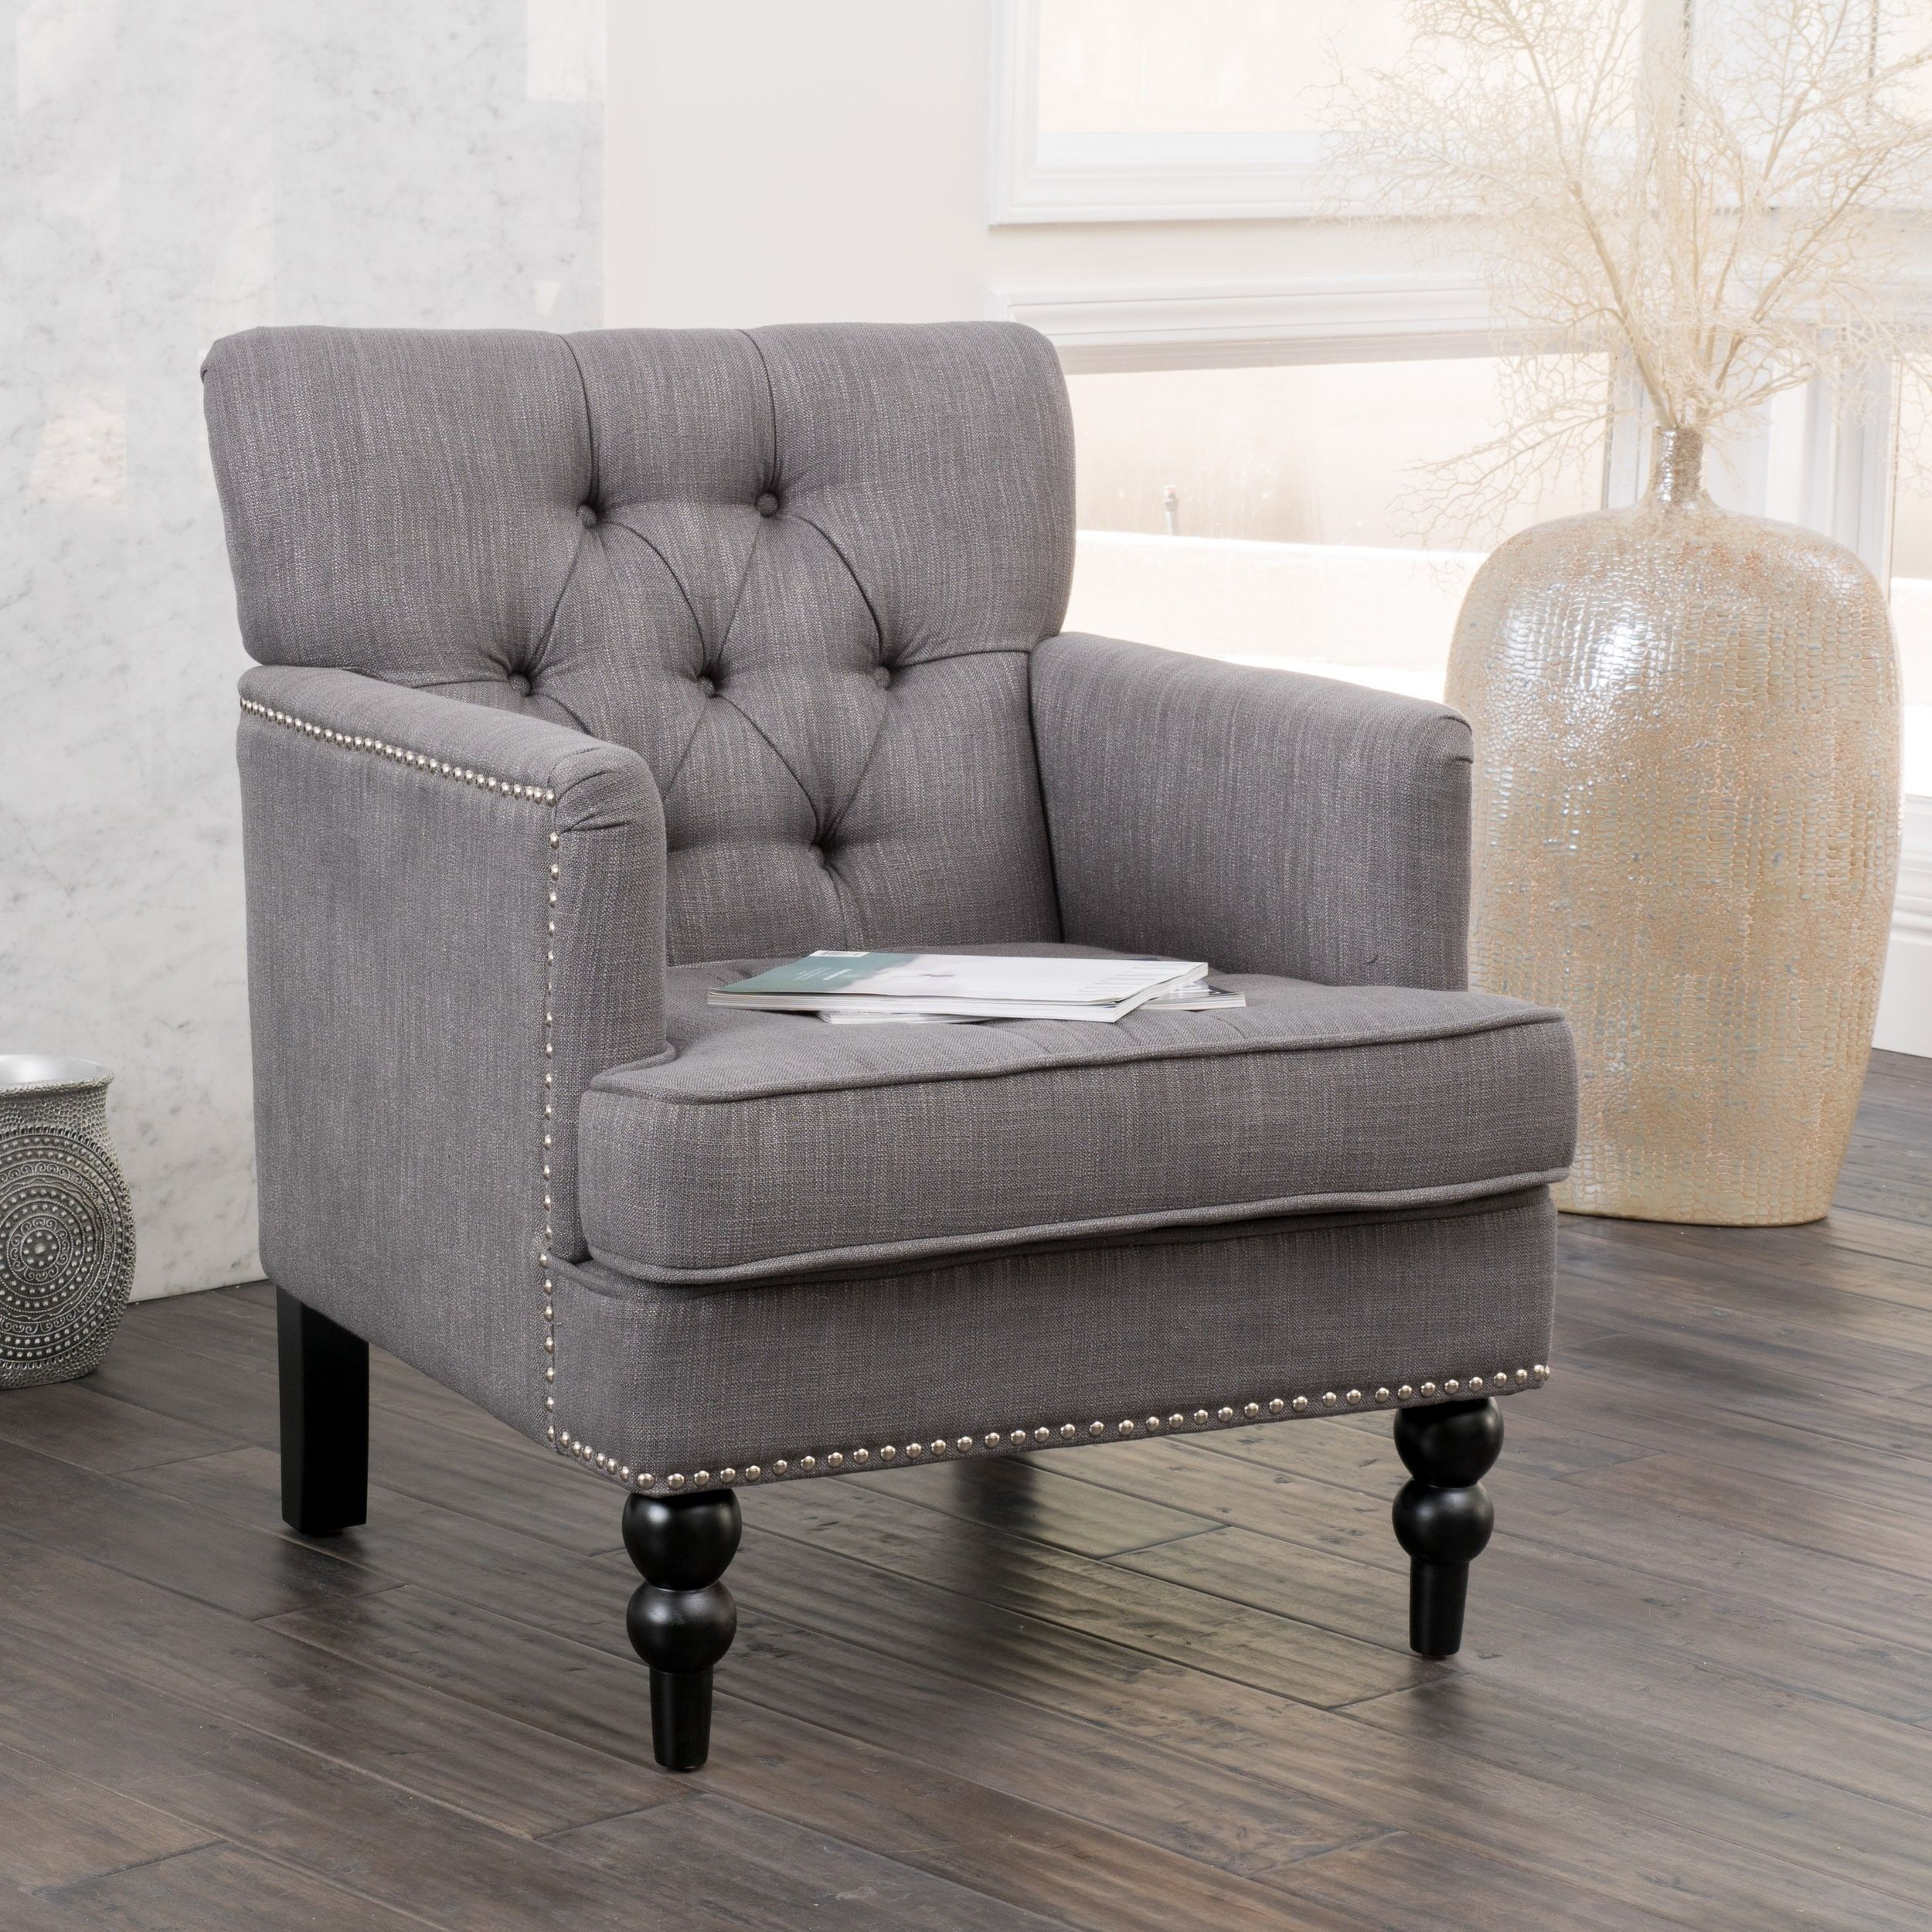 Shop Overstock And Find The Best Online Deals On Everything Stunning Overstock Living Room Chairs 2018